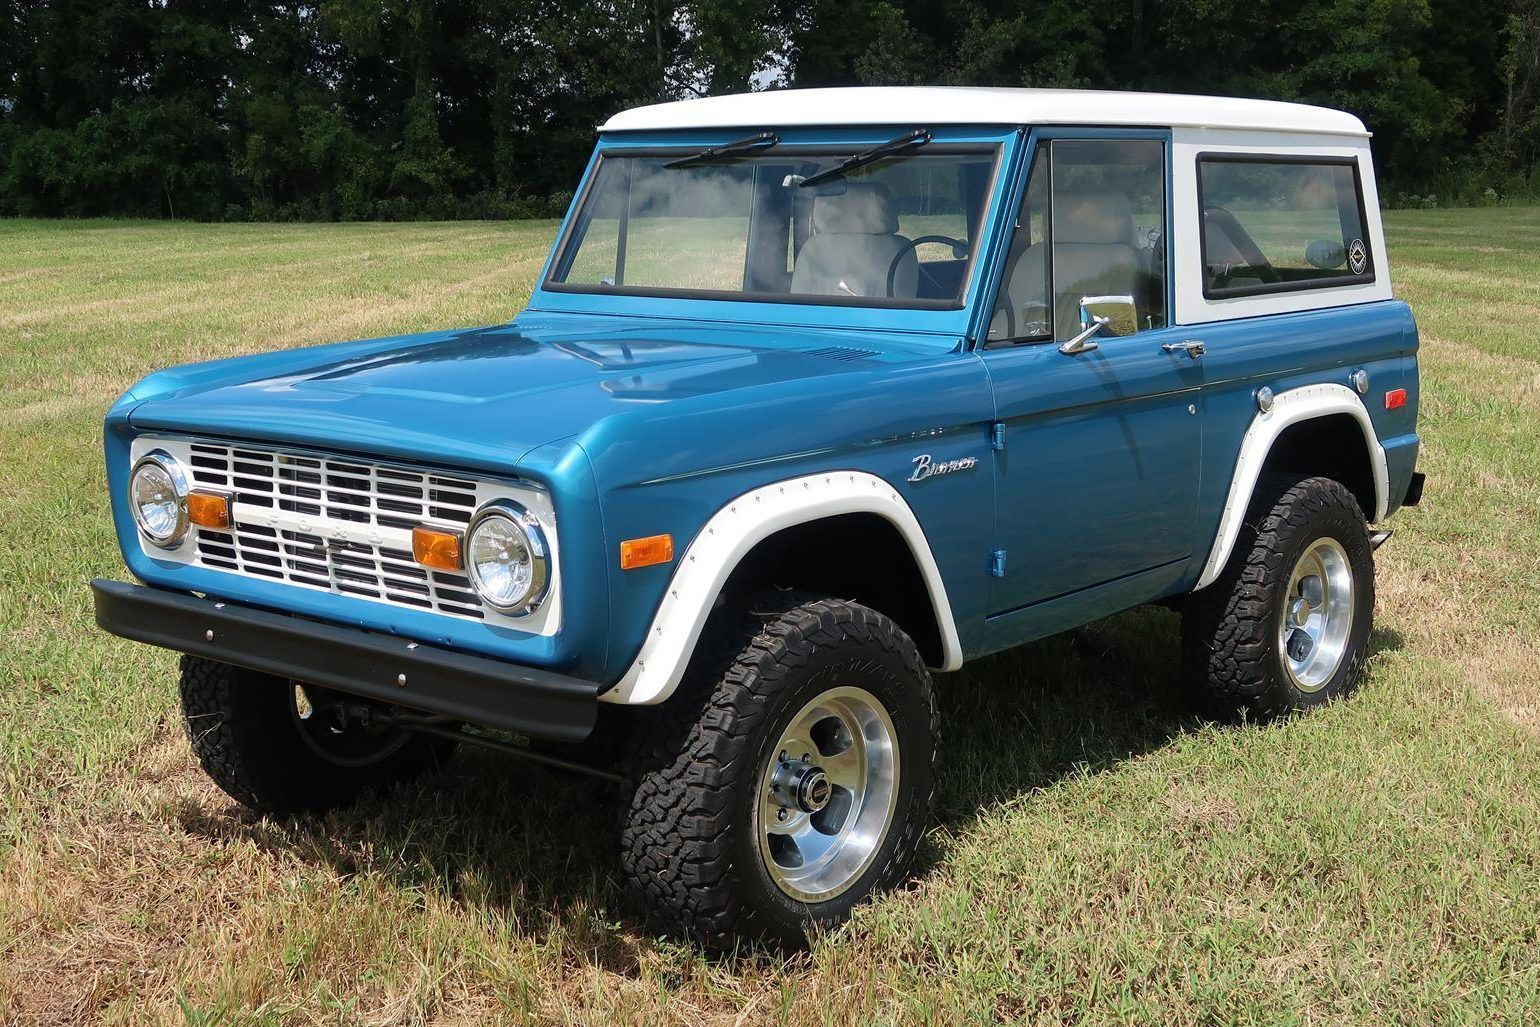 Bid For The Chance To Own A 1970 Ford Bronco At Auction With Bring